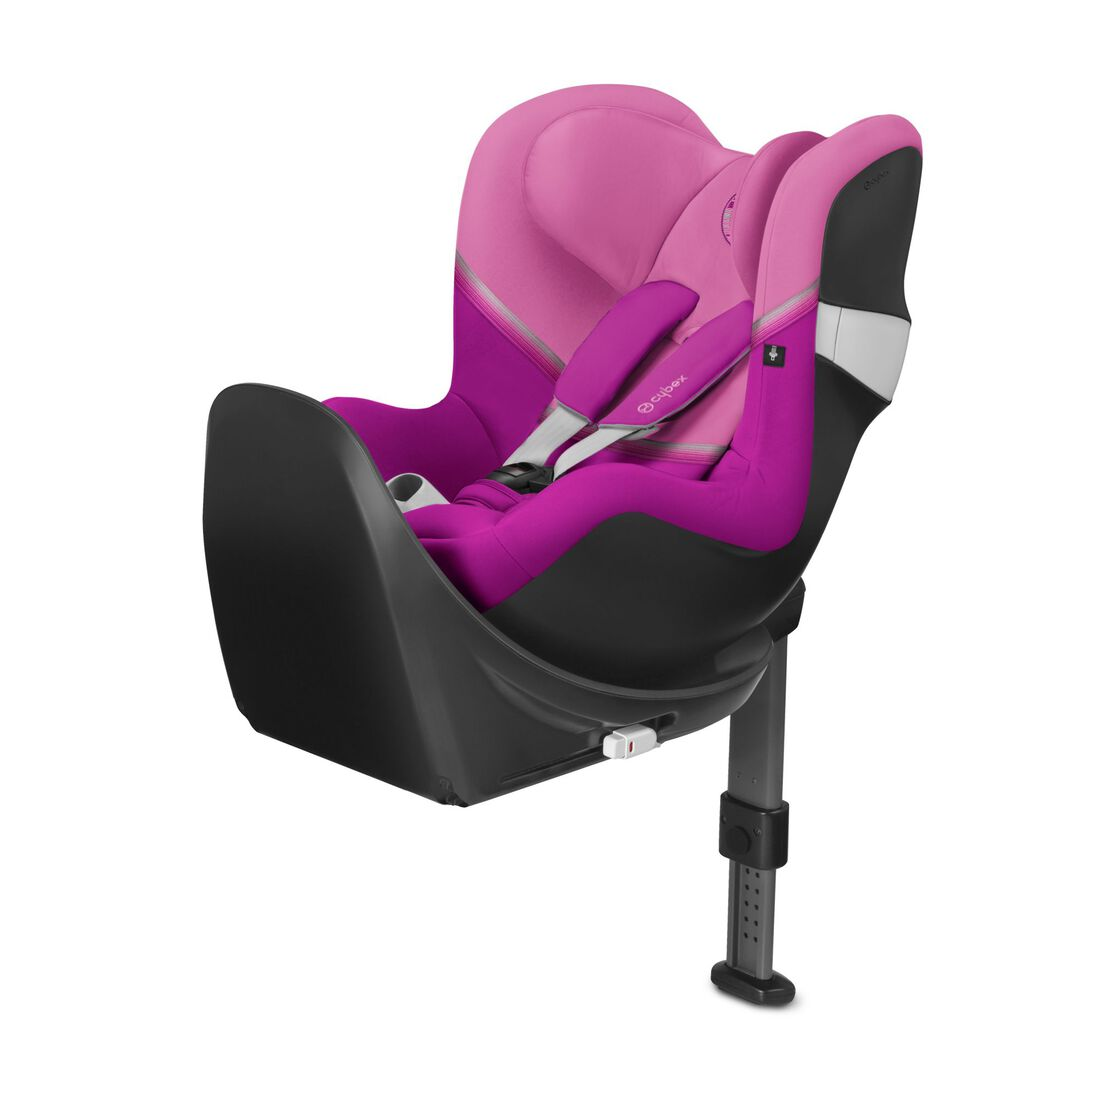 CYBEX Sirona M2 i-Size and Base M - Magnolia Pink in Magnolia Pink large image number 1